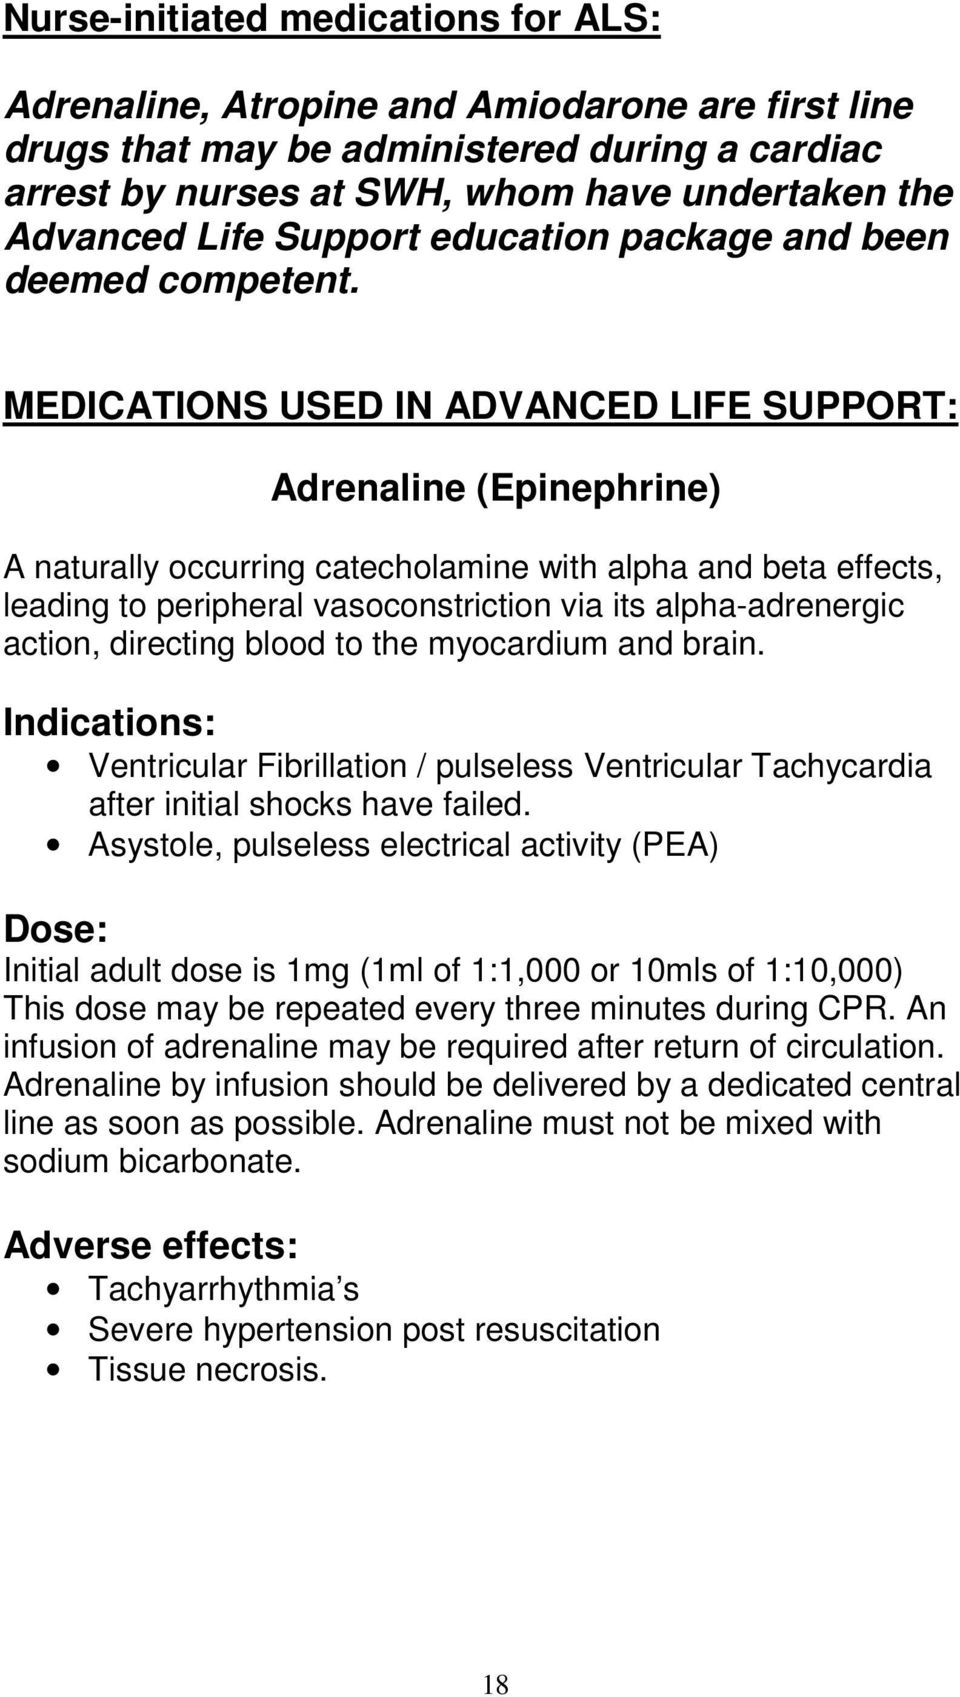 MEDICATIONS USED IN ADVANCED LIFE SUPPORT: Adrenaline (Epinephrine) A naturally occurring catecholamine with alpha and beta effects, leading to peripheral vasoconstriction via its alpha-adrenergic